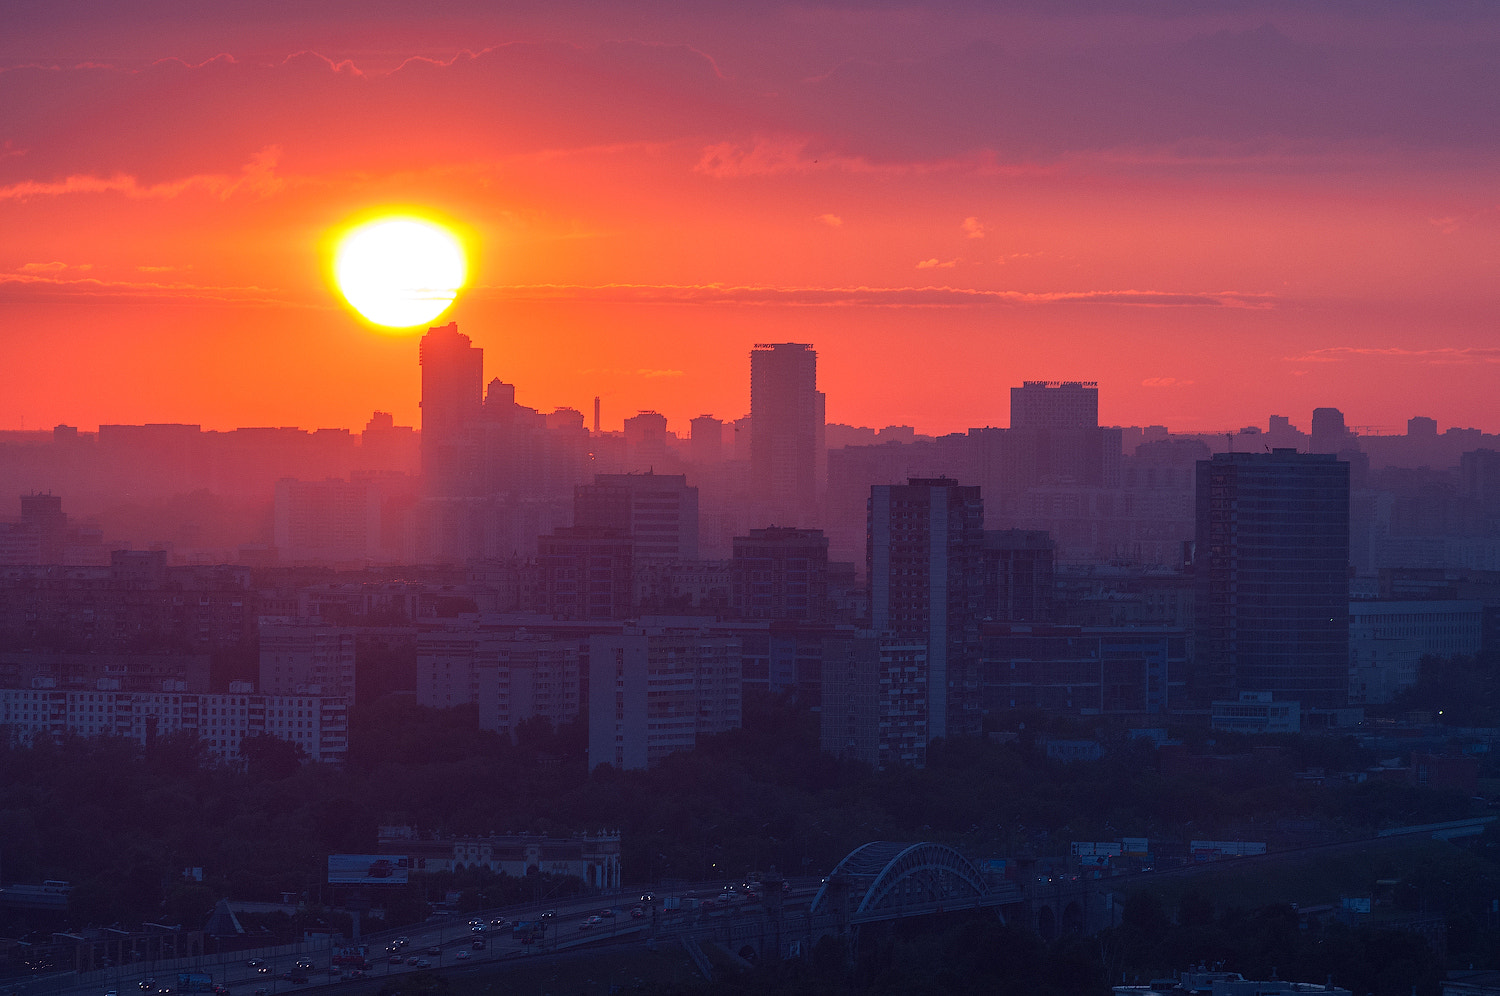 Photograph Moscow sunset by Alexei Zaripov on 500px